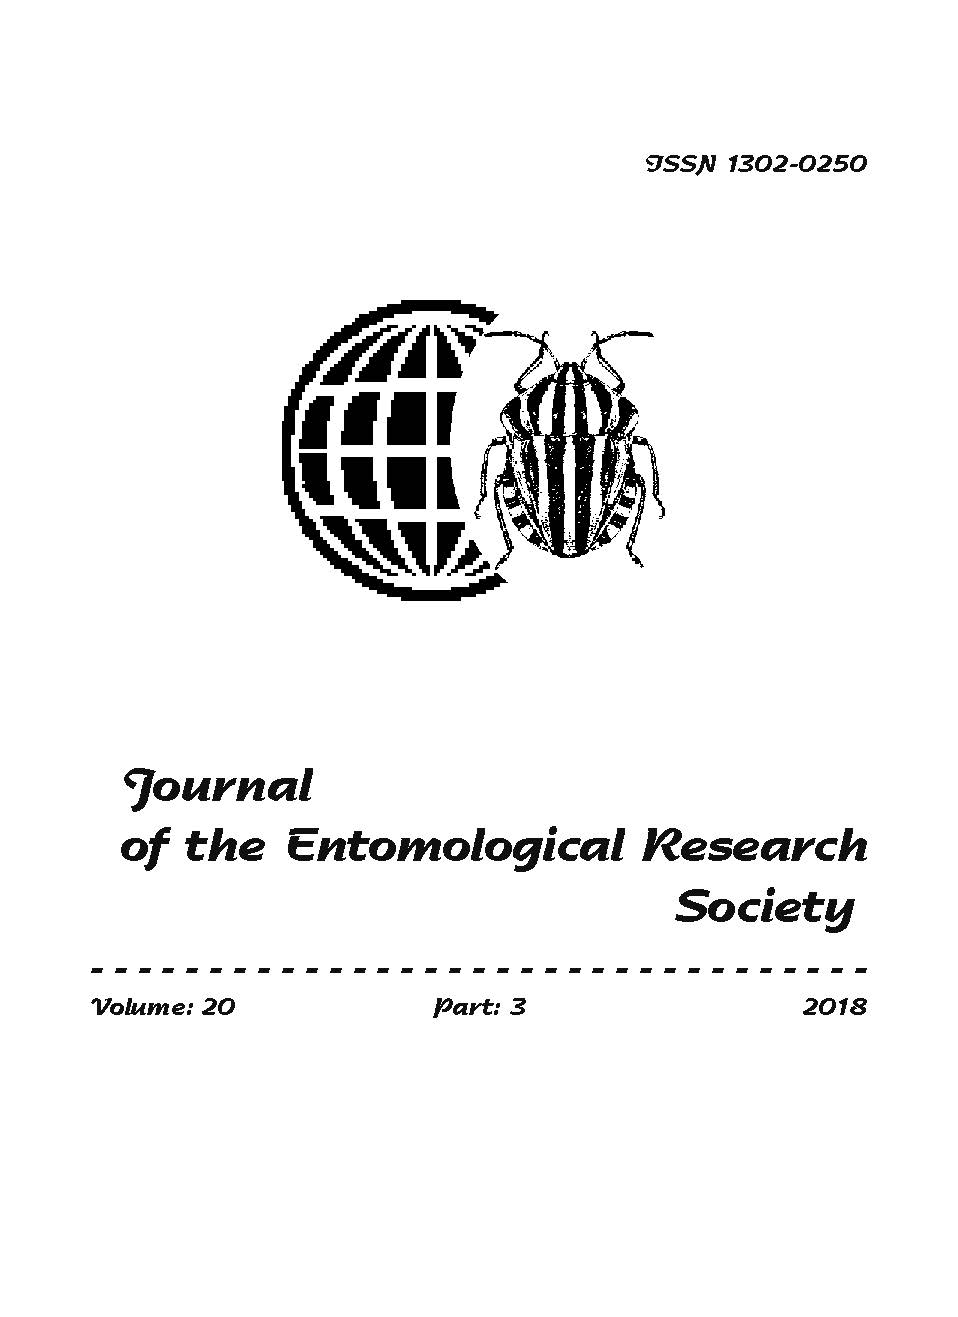 View Vol. 20 No. 3 (2018): Journal of the Entomological Research Society